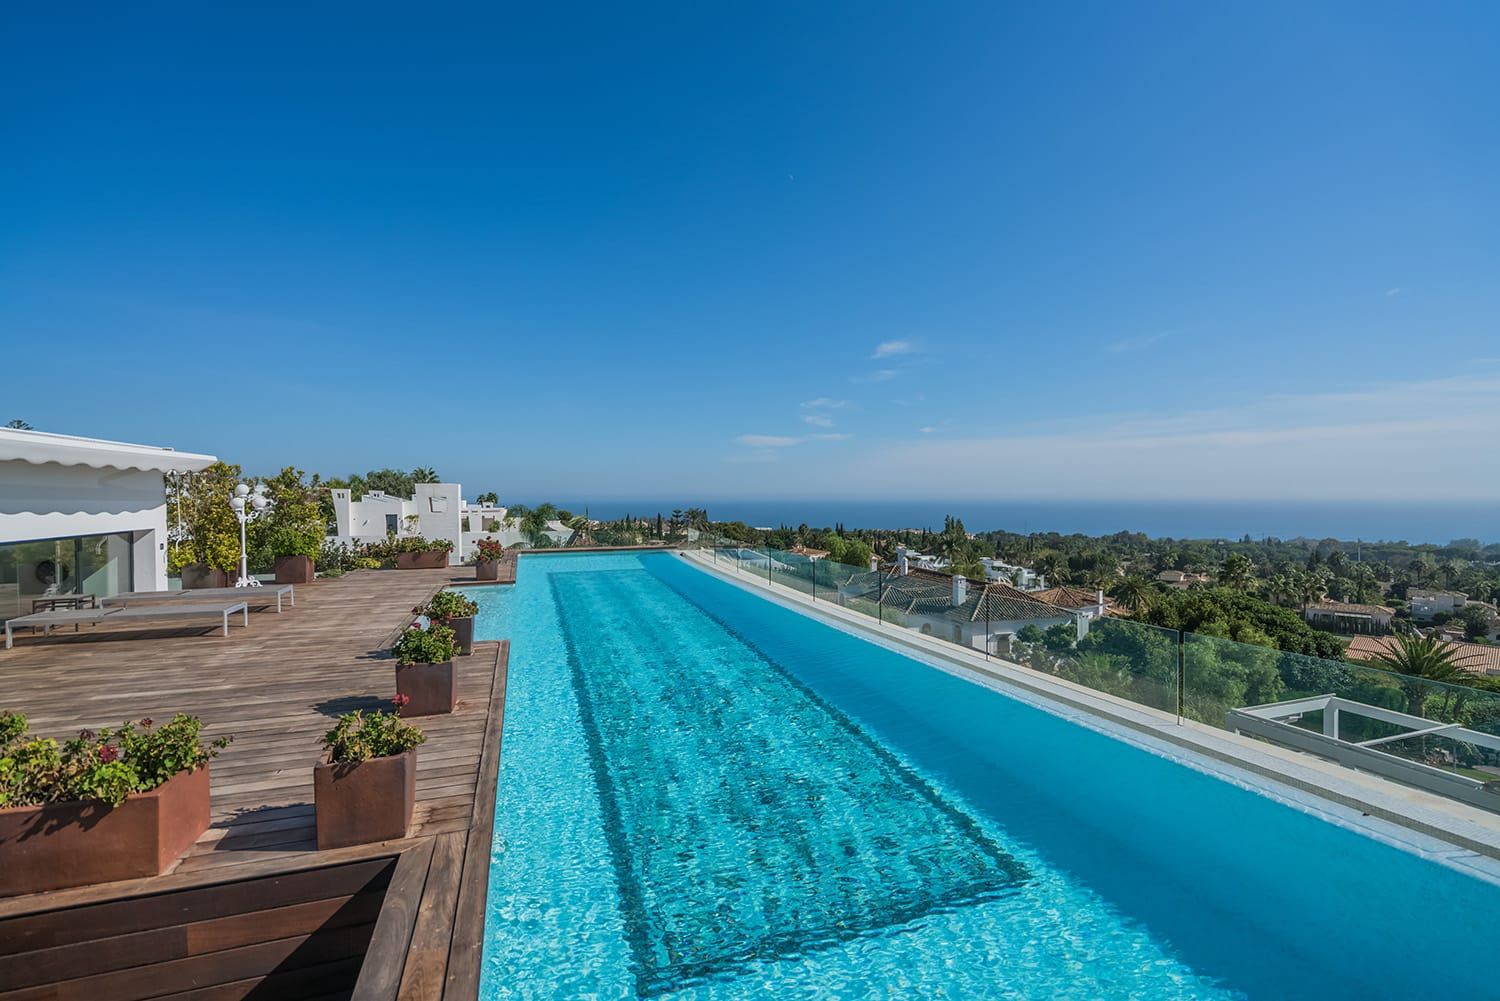 We can all appreciate a beautiful landscape, whether it's laid out in front of us or expertly captured on camera. What about living in one of those? Surrounded with lush greenery, with epic panoramas, in the premium lifestyle setting: between the shimmering in the sun Mediterranean Sea and majestic mountain scenery that never cease to amaze…